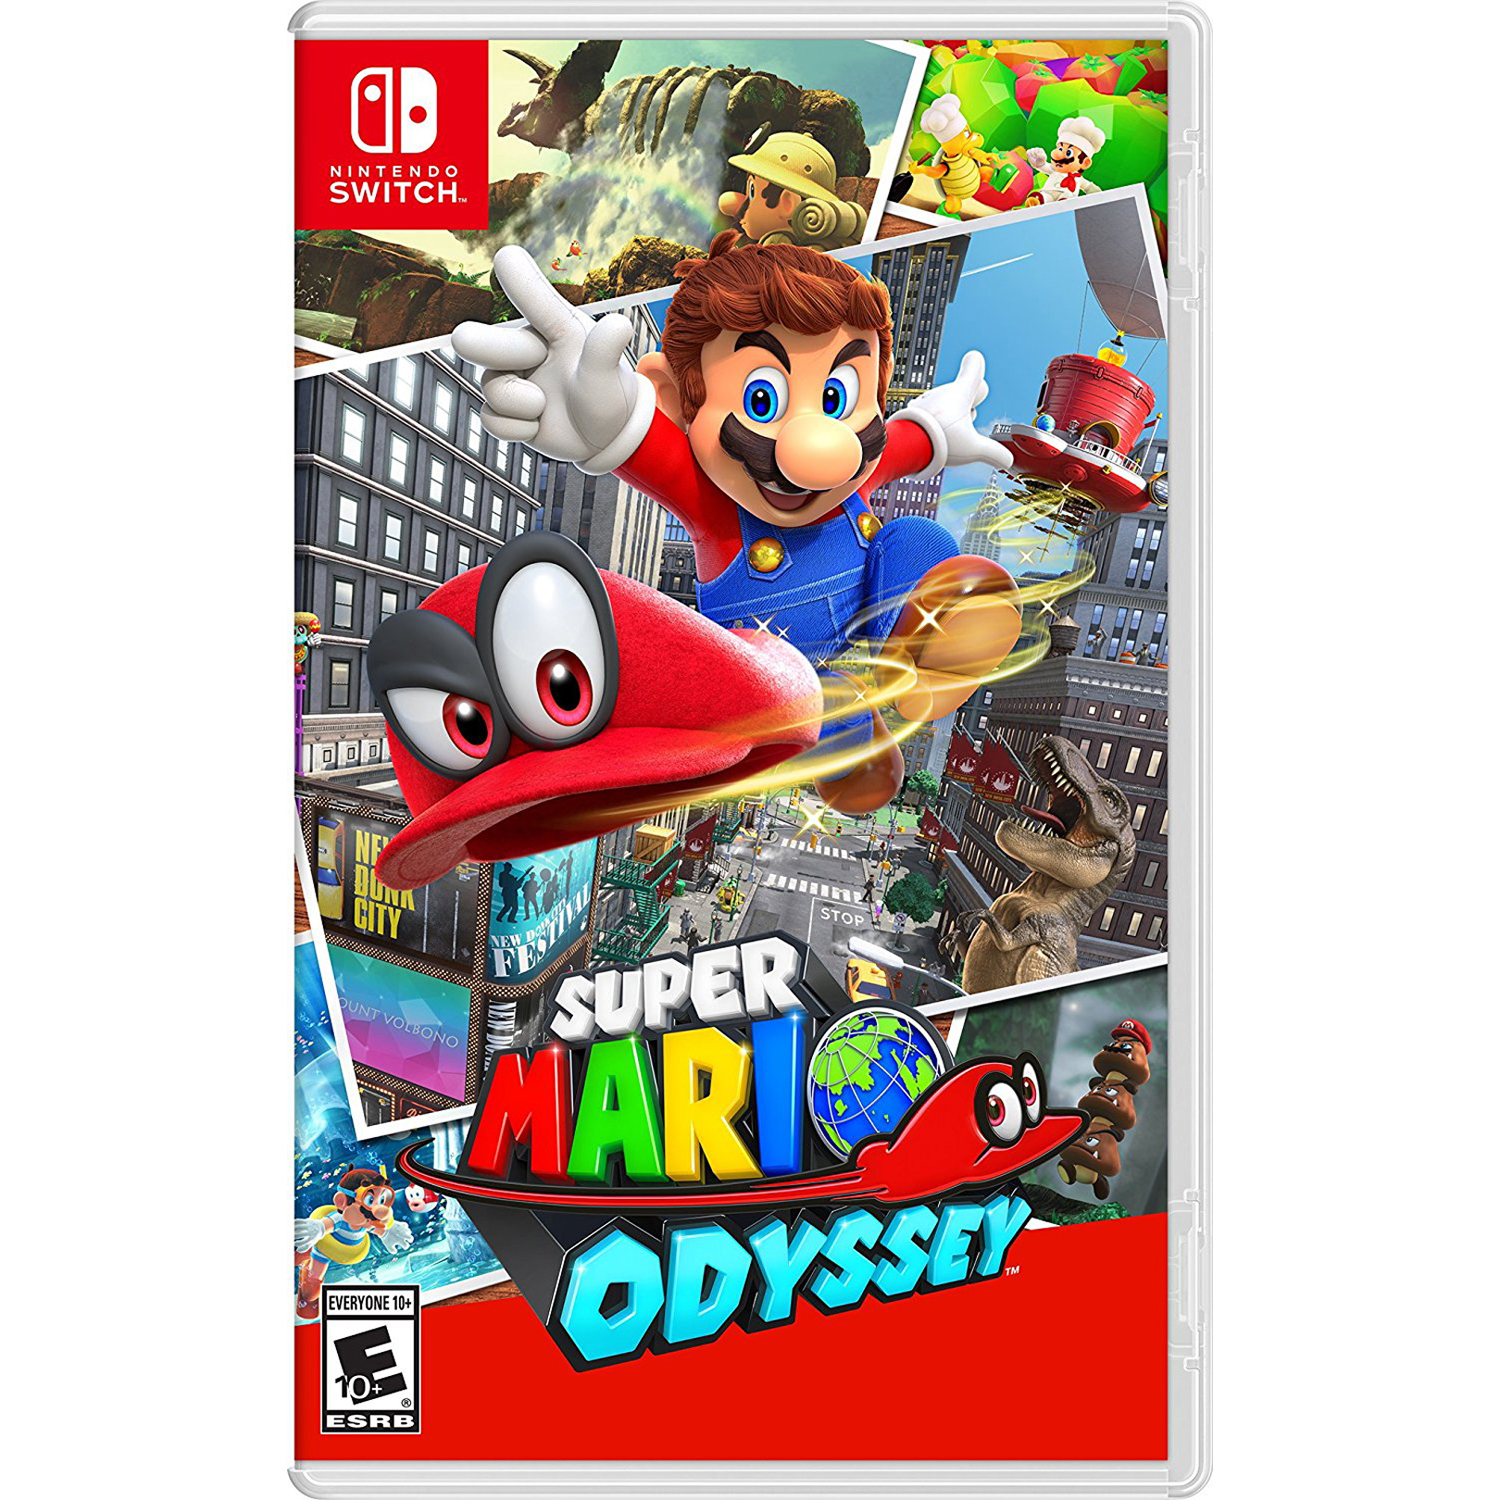 Super Mario Odyssey, Nintendo, Nintendo Switch, [Digital Download], 0004549659170